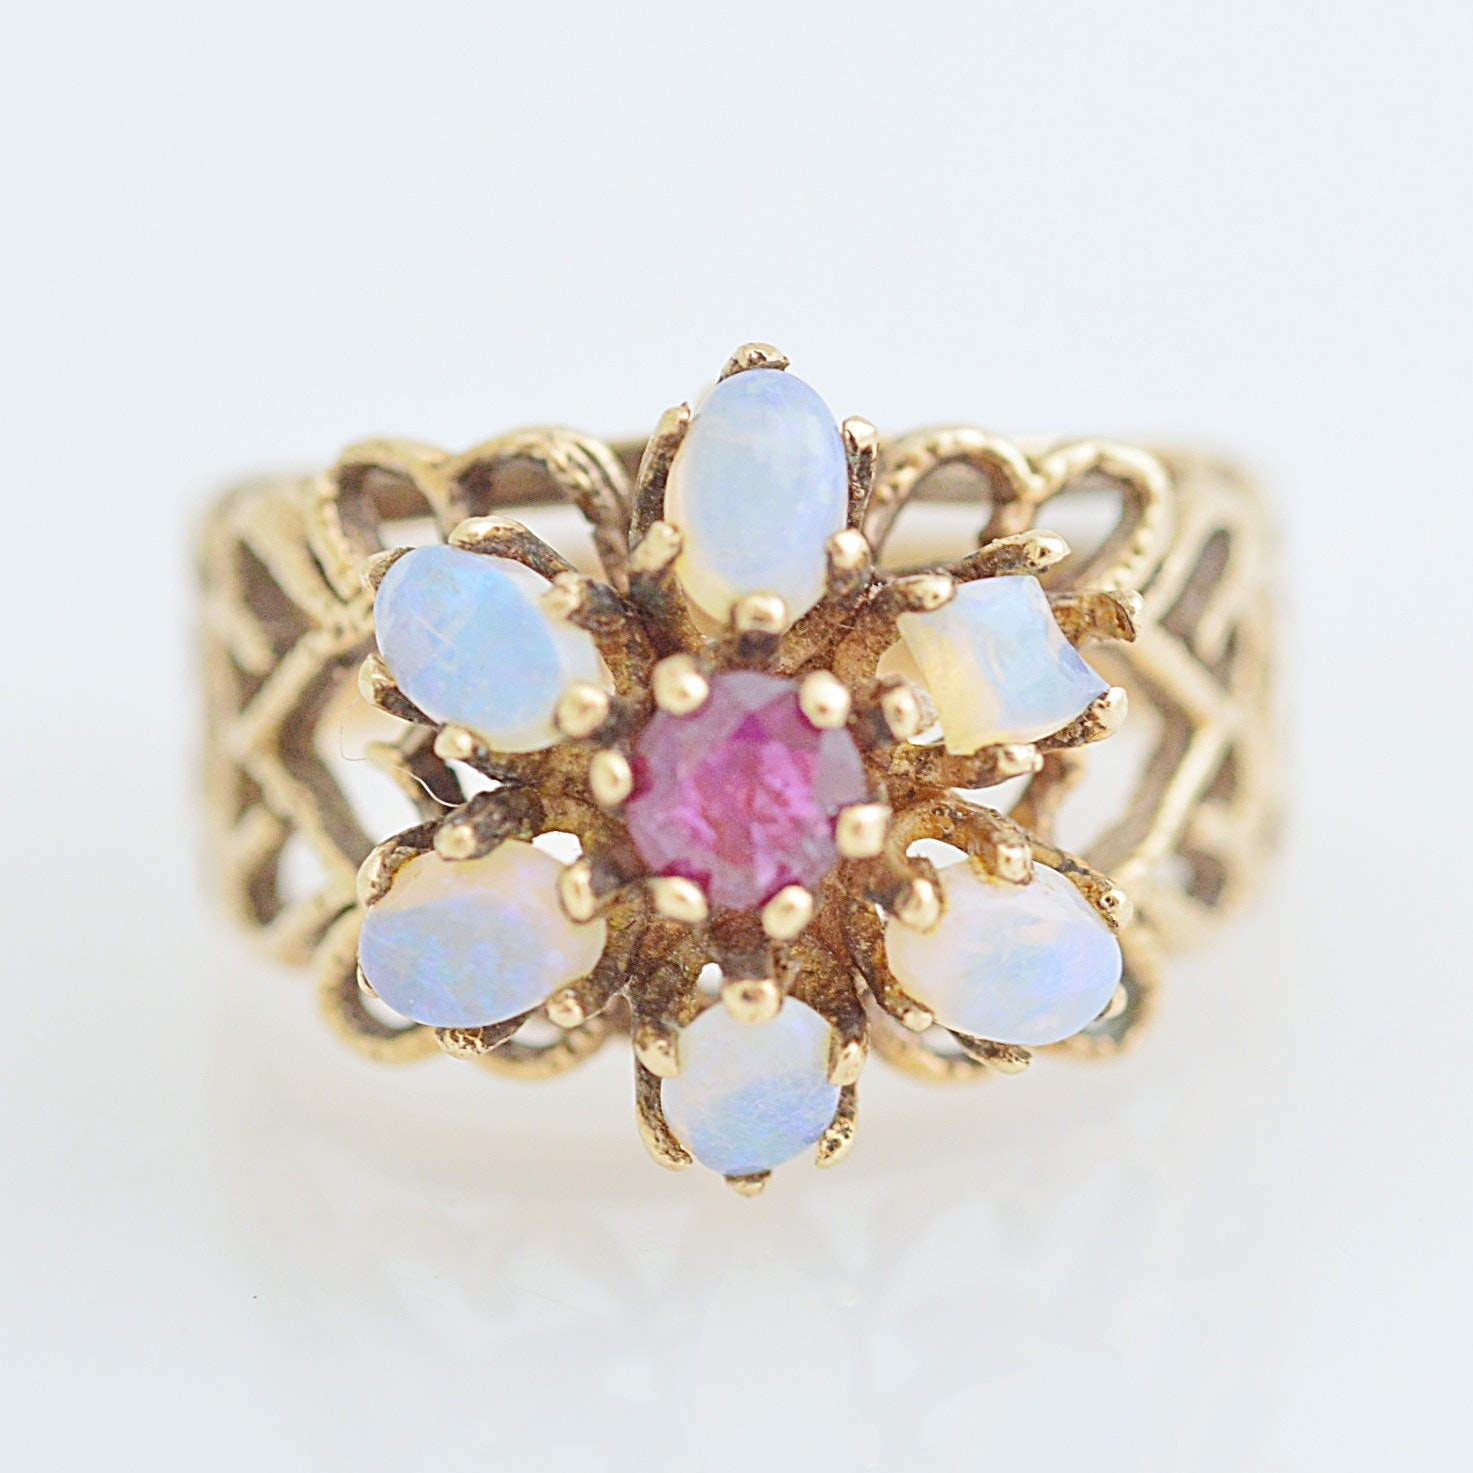 Vintage 10K Yellow Gold, Ruby and Opal Ring